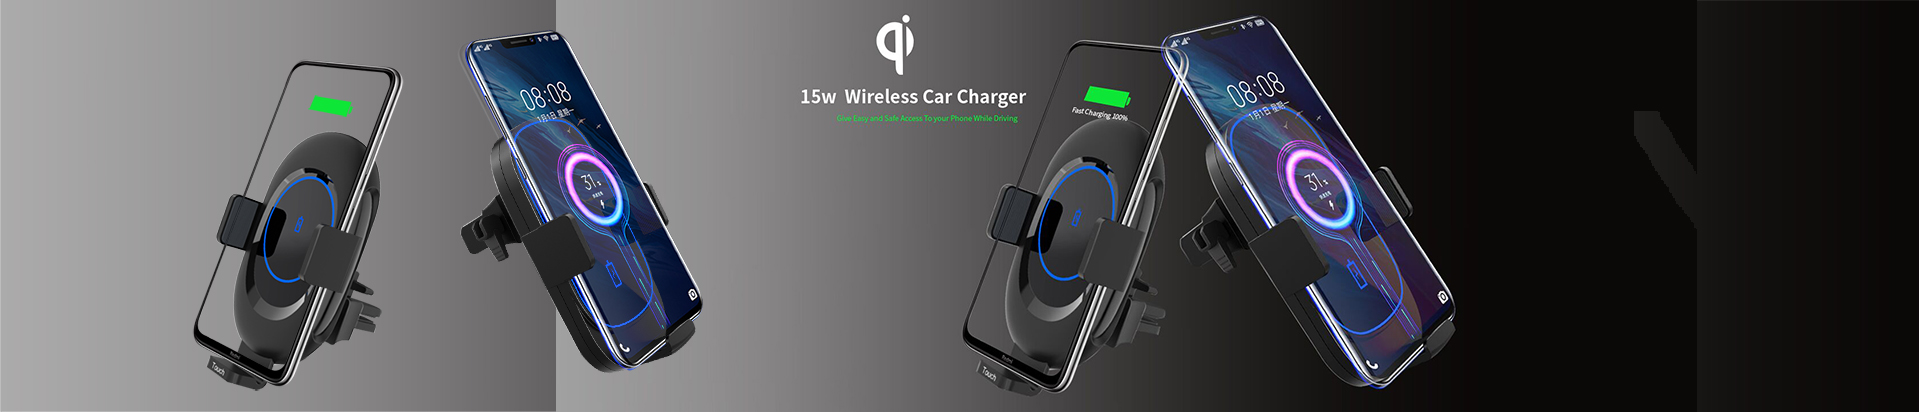 Smacat Wireless Charger